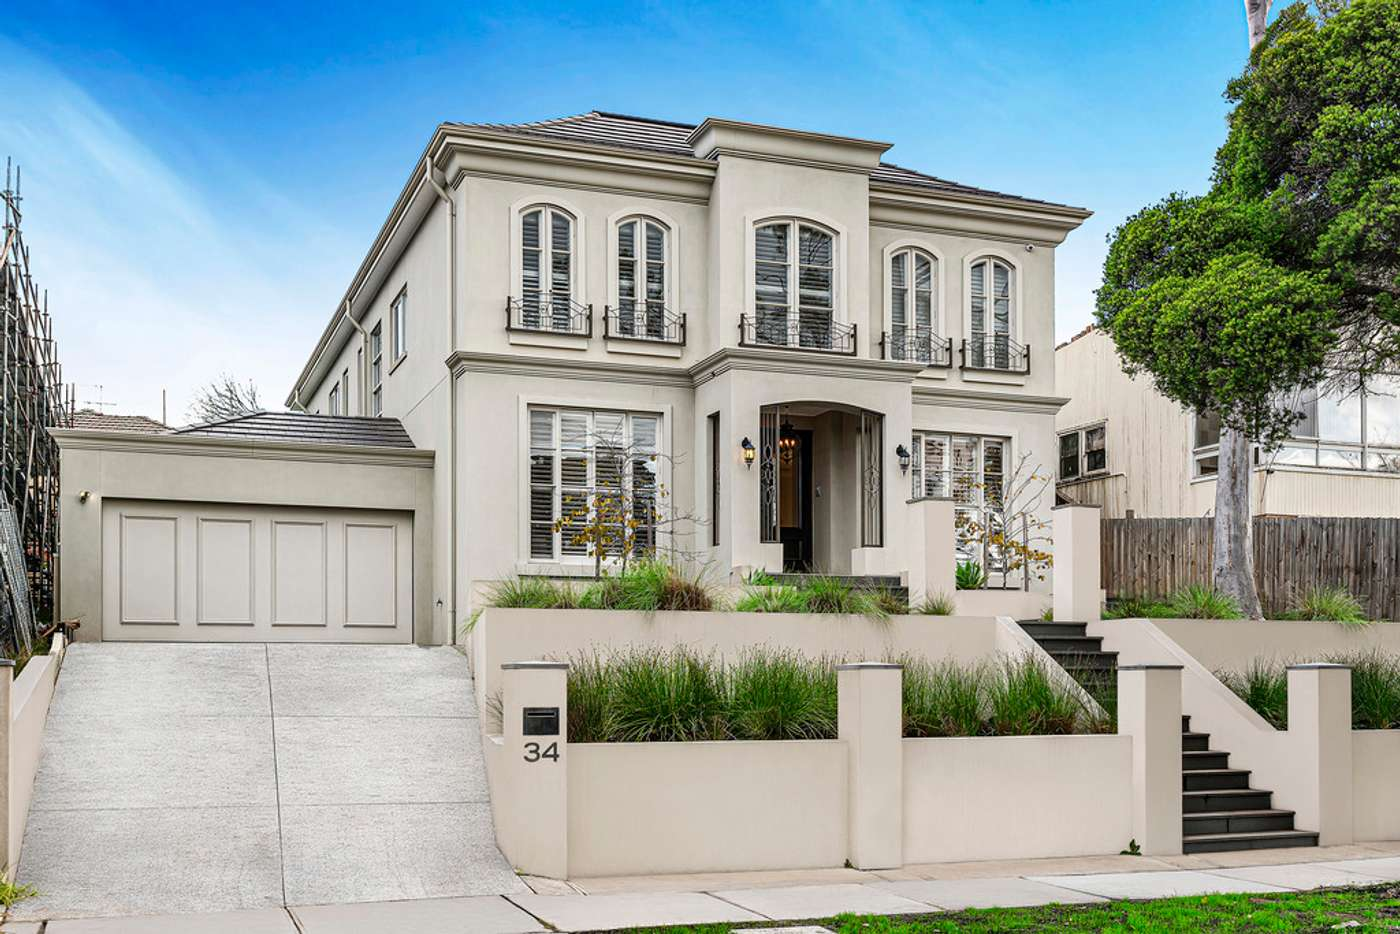 Main view of Homely house listing, 34 Tower Road, Balwyn North VIC 3104